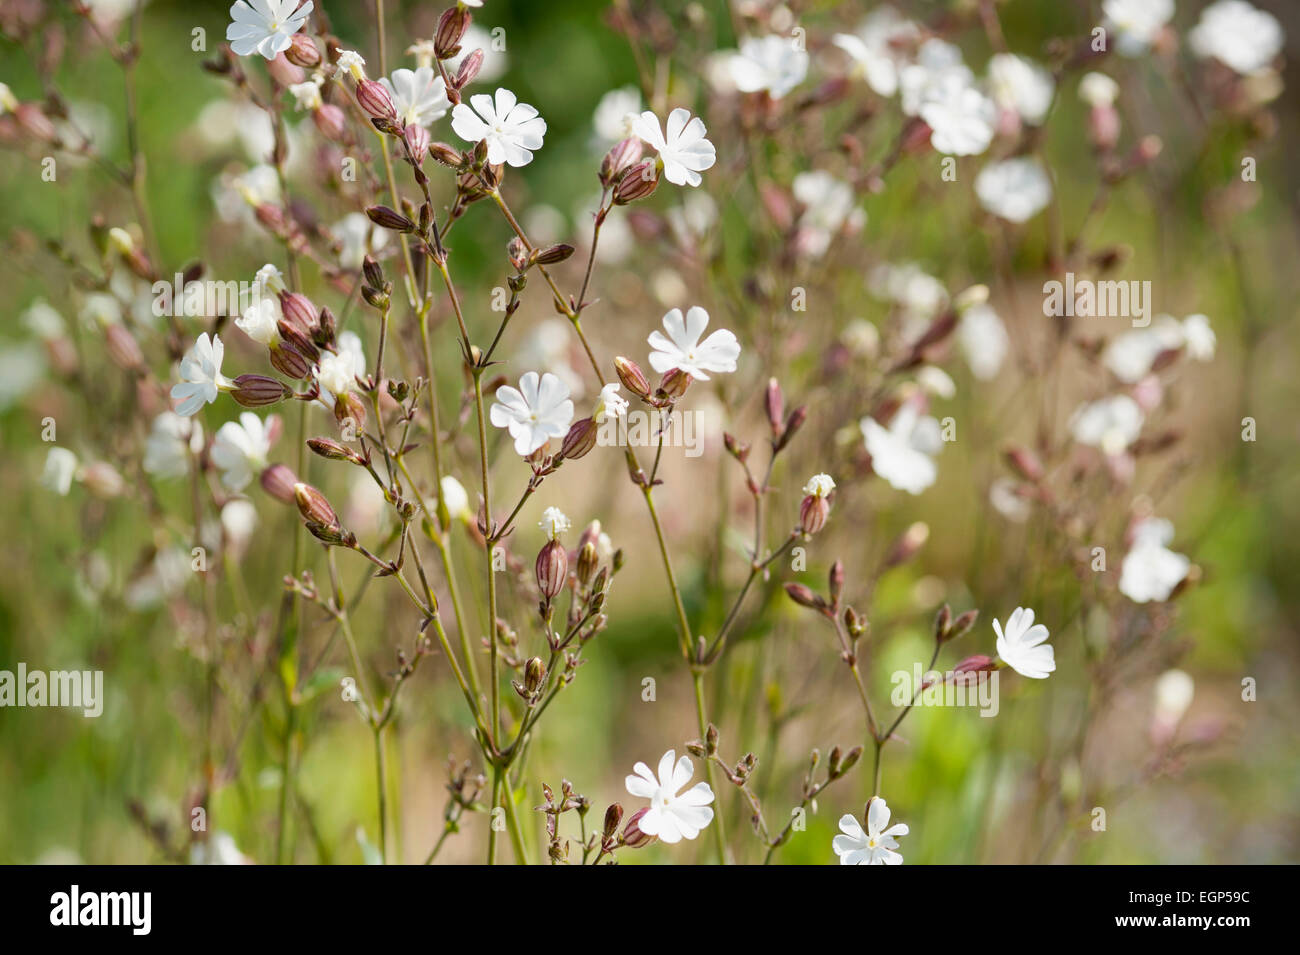 Campion, Lychnis flos-jovis. Side view of many slender stems with white flowers and pink calyxes against green background. - Stock Image